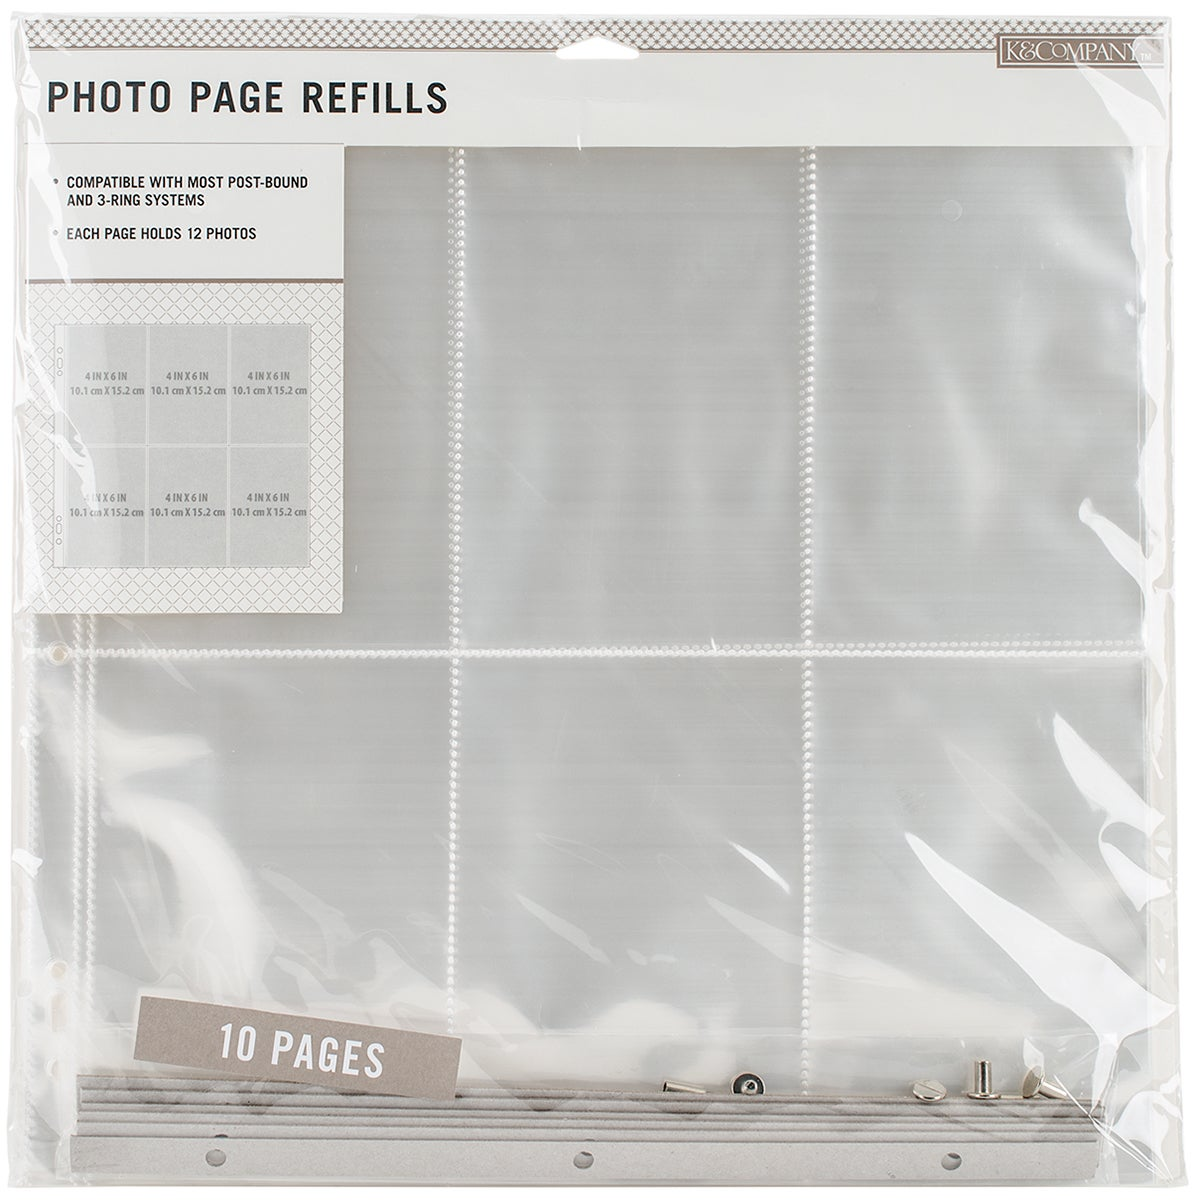 4 x 6 photo album refill pages compare prices at nextag